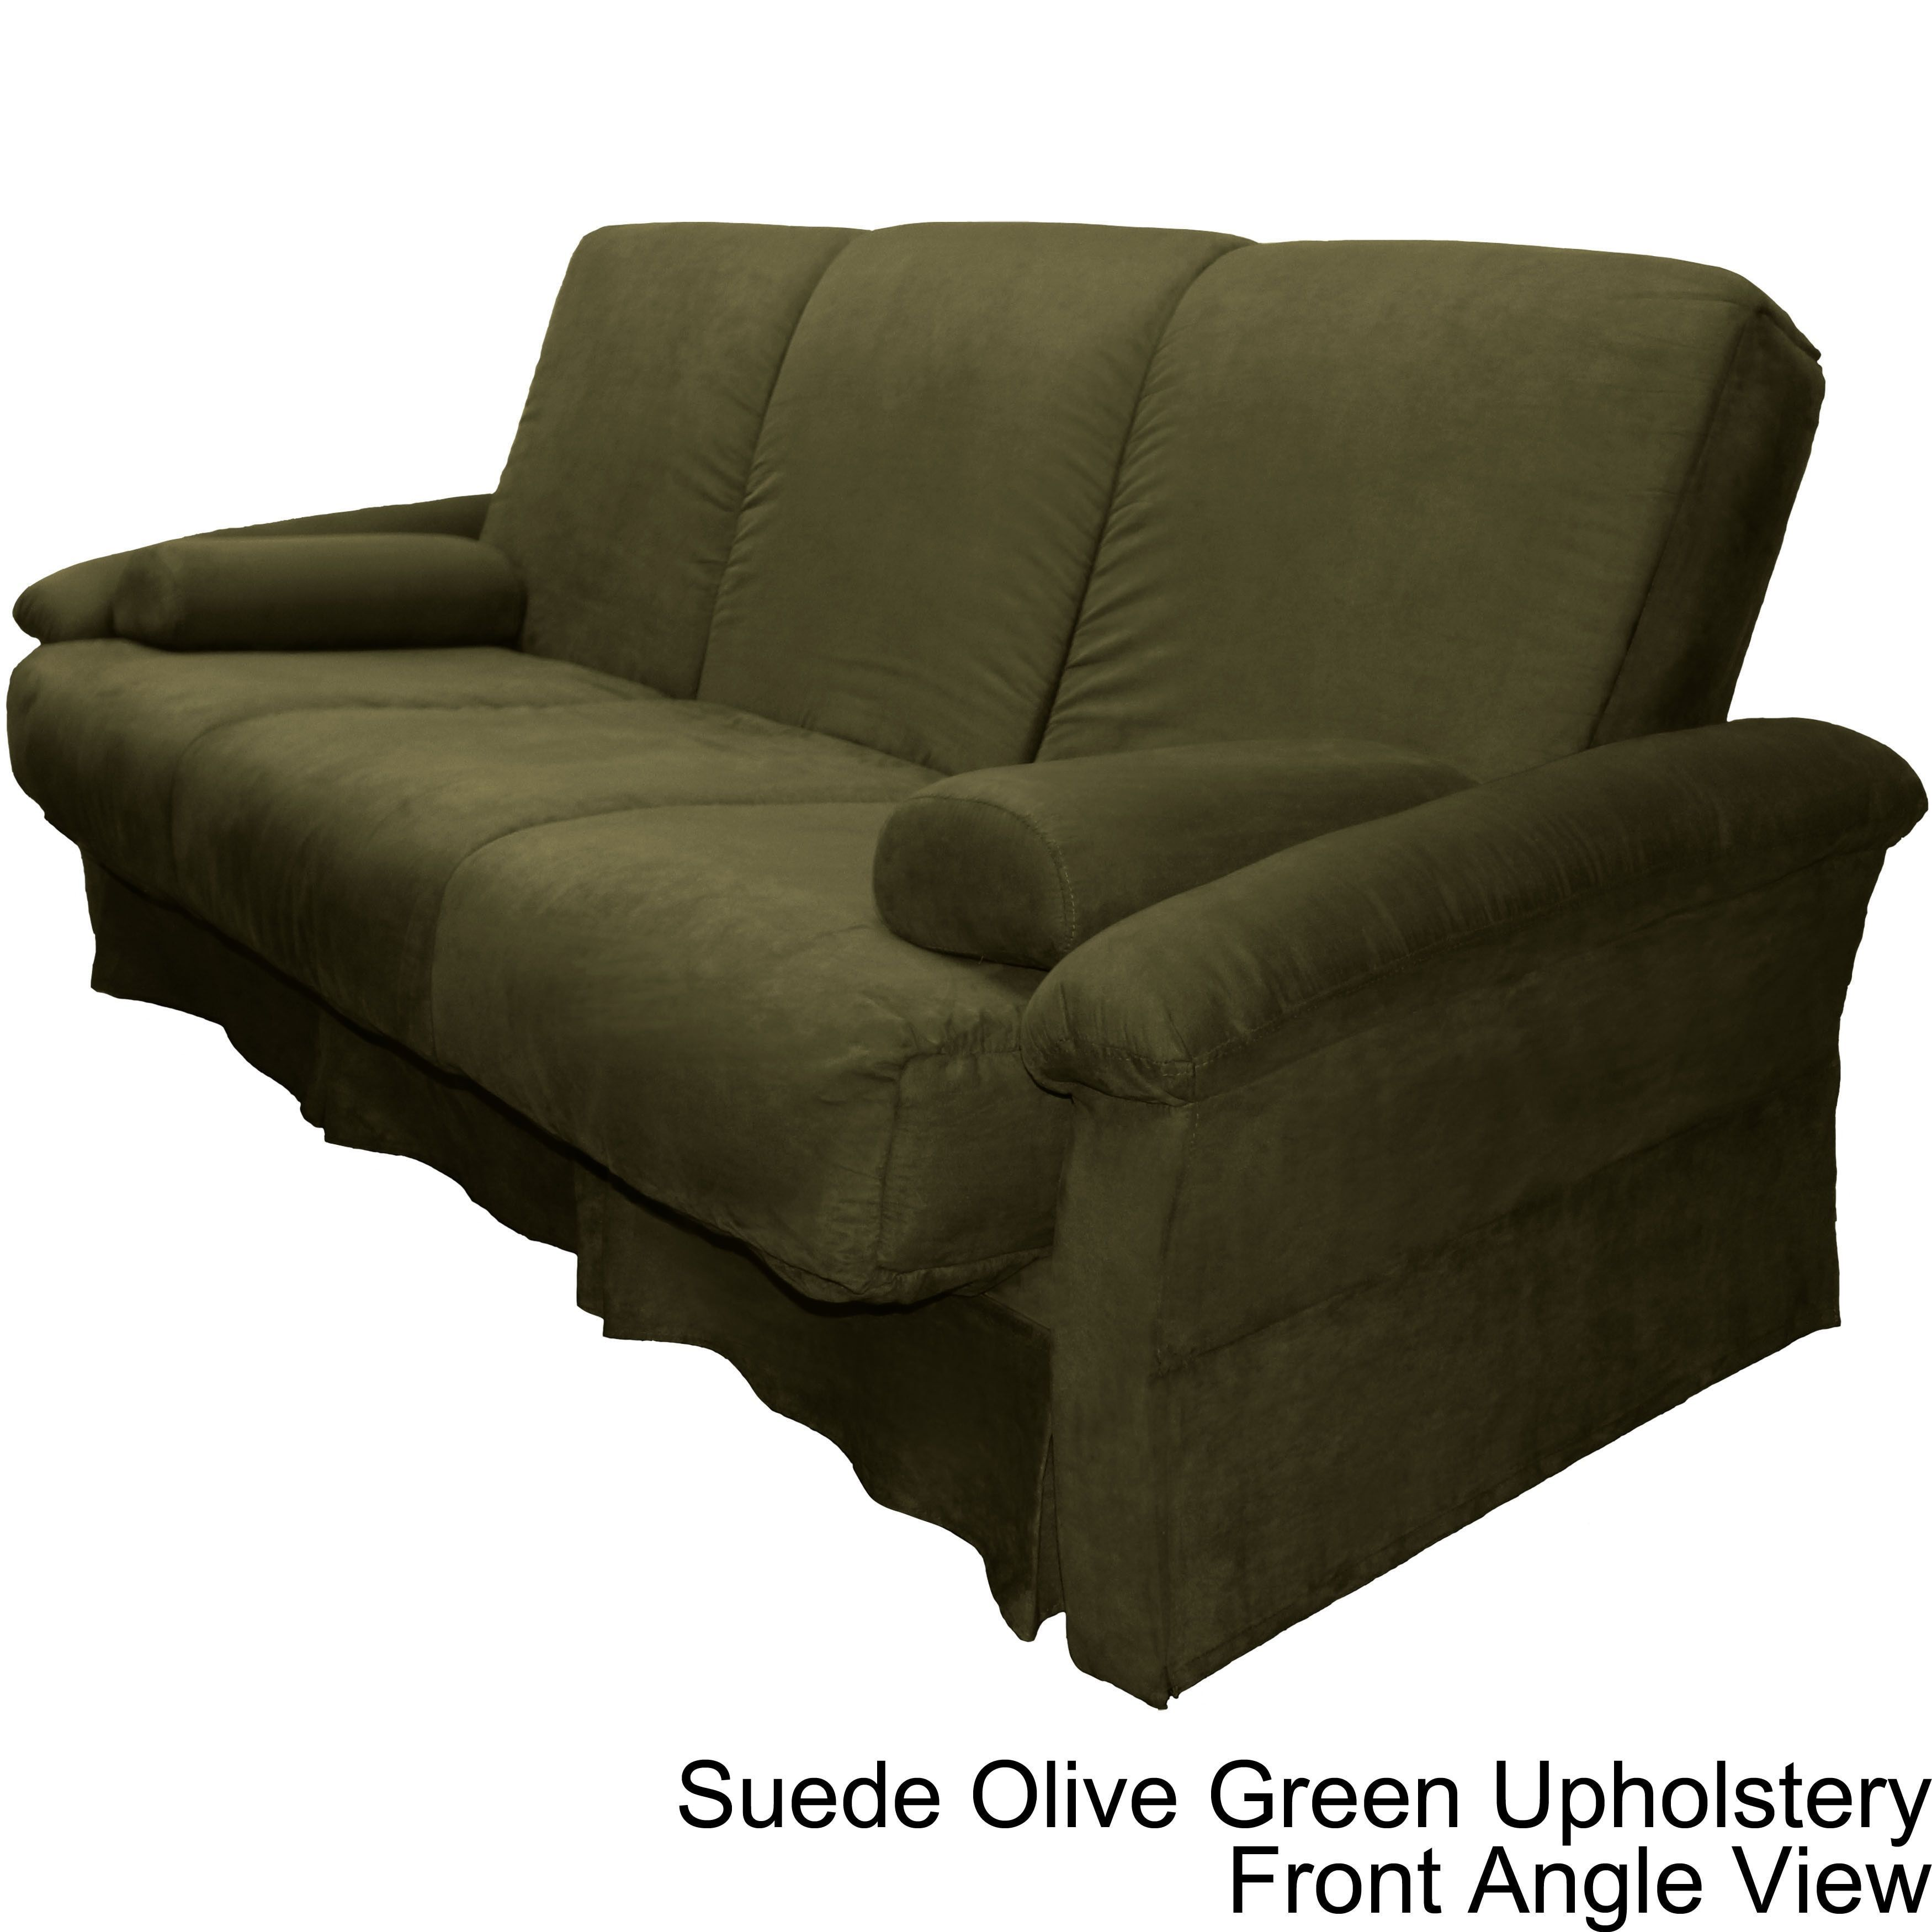 Epicfurnishings Taylor Perfect Sit And Sleep Transitional Pocketed Coil Pillow Top Futon Chair Or Sofa Sleeper